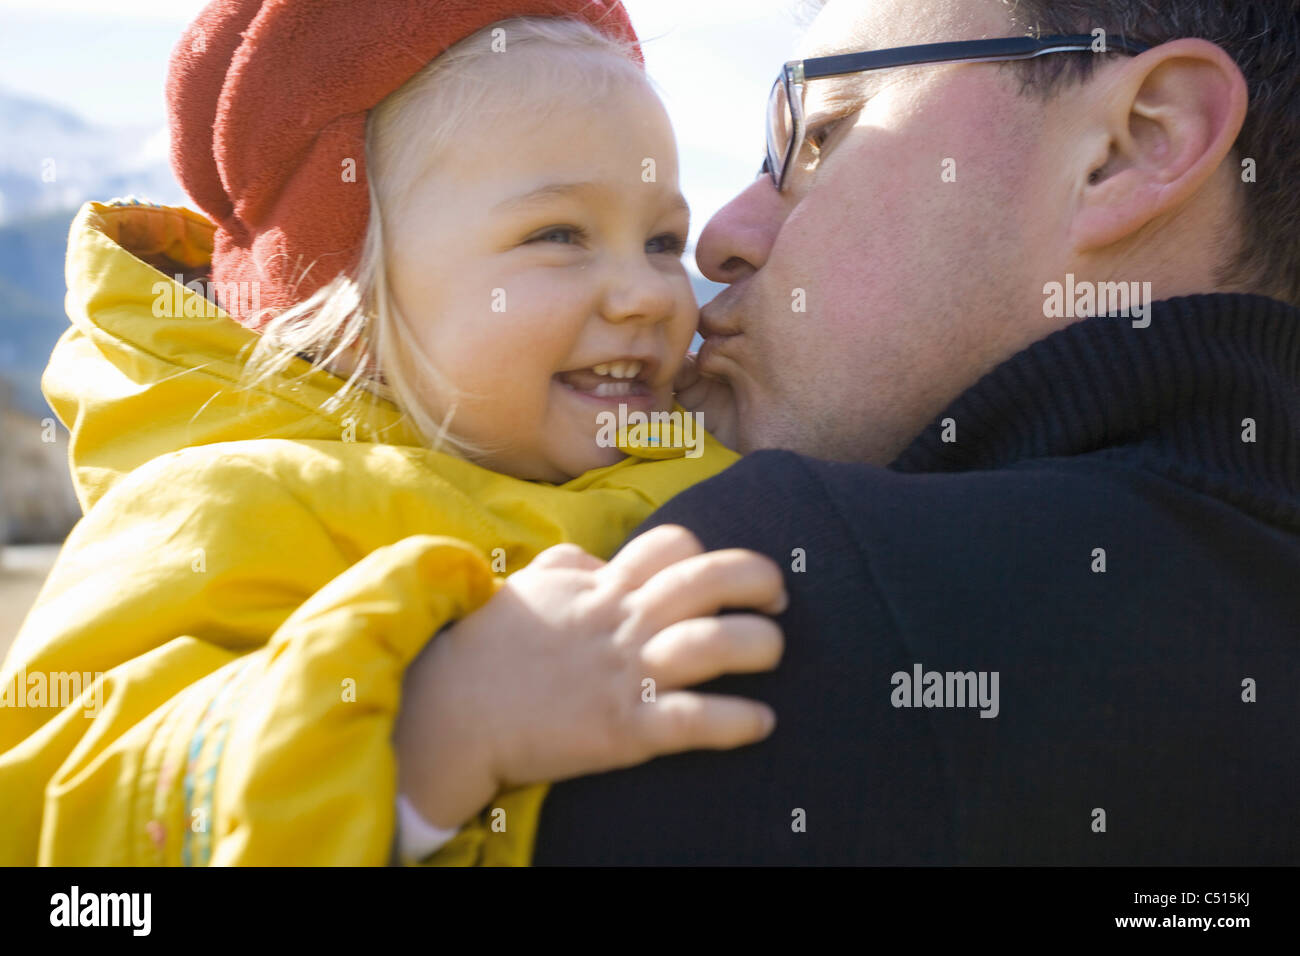 Father kissing baby girl on the cheek - Stock Image